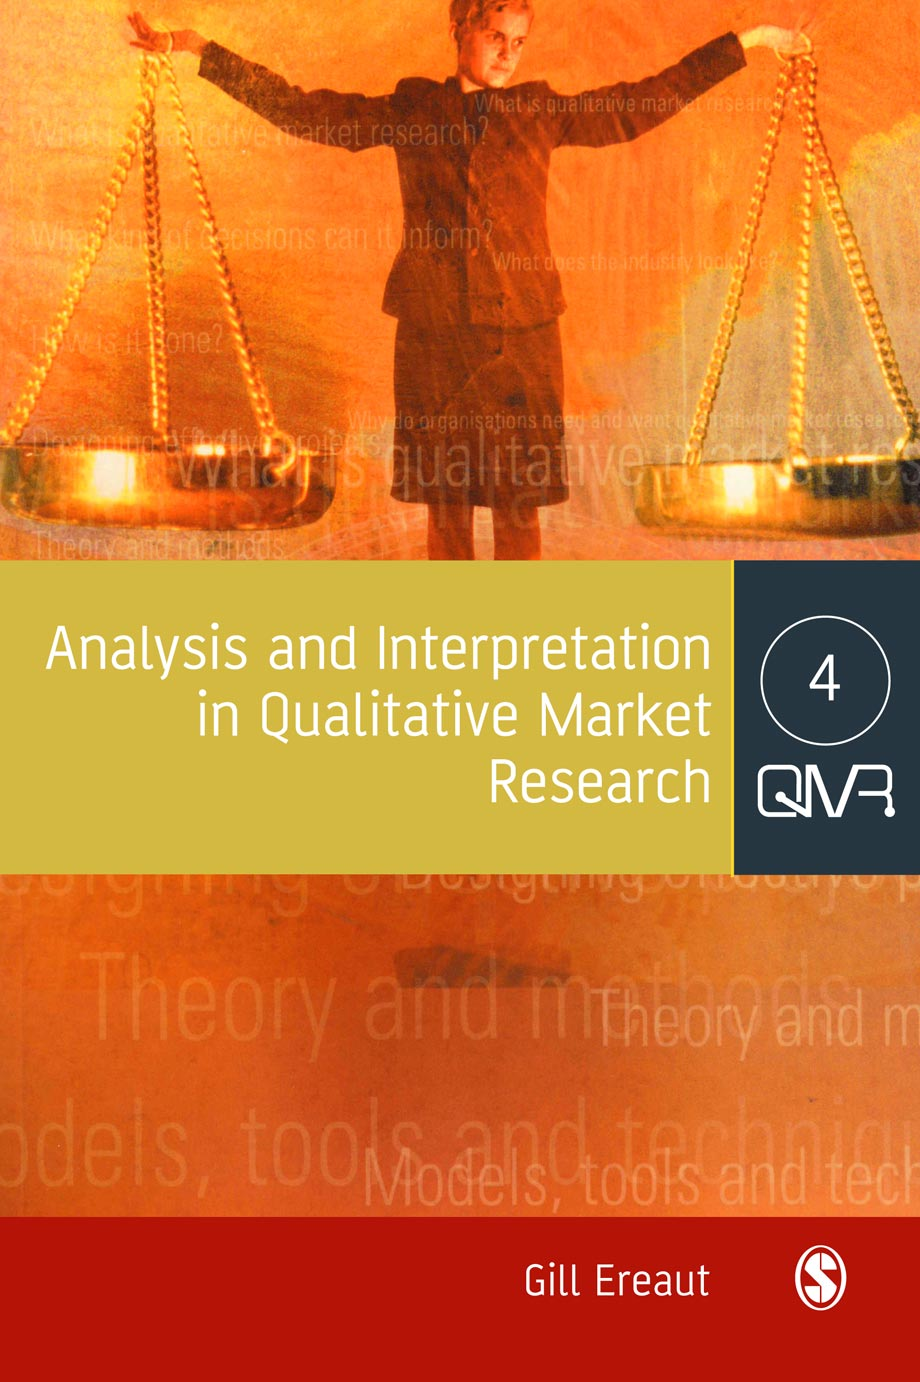 Download Ebook Analysis and Interpretation in Qualitative Market Research by Gill Ereaut Pdf